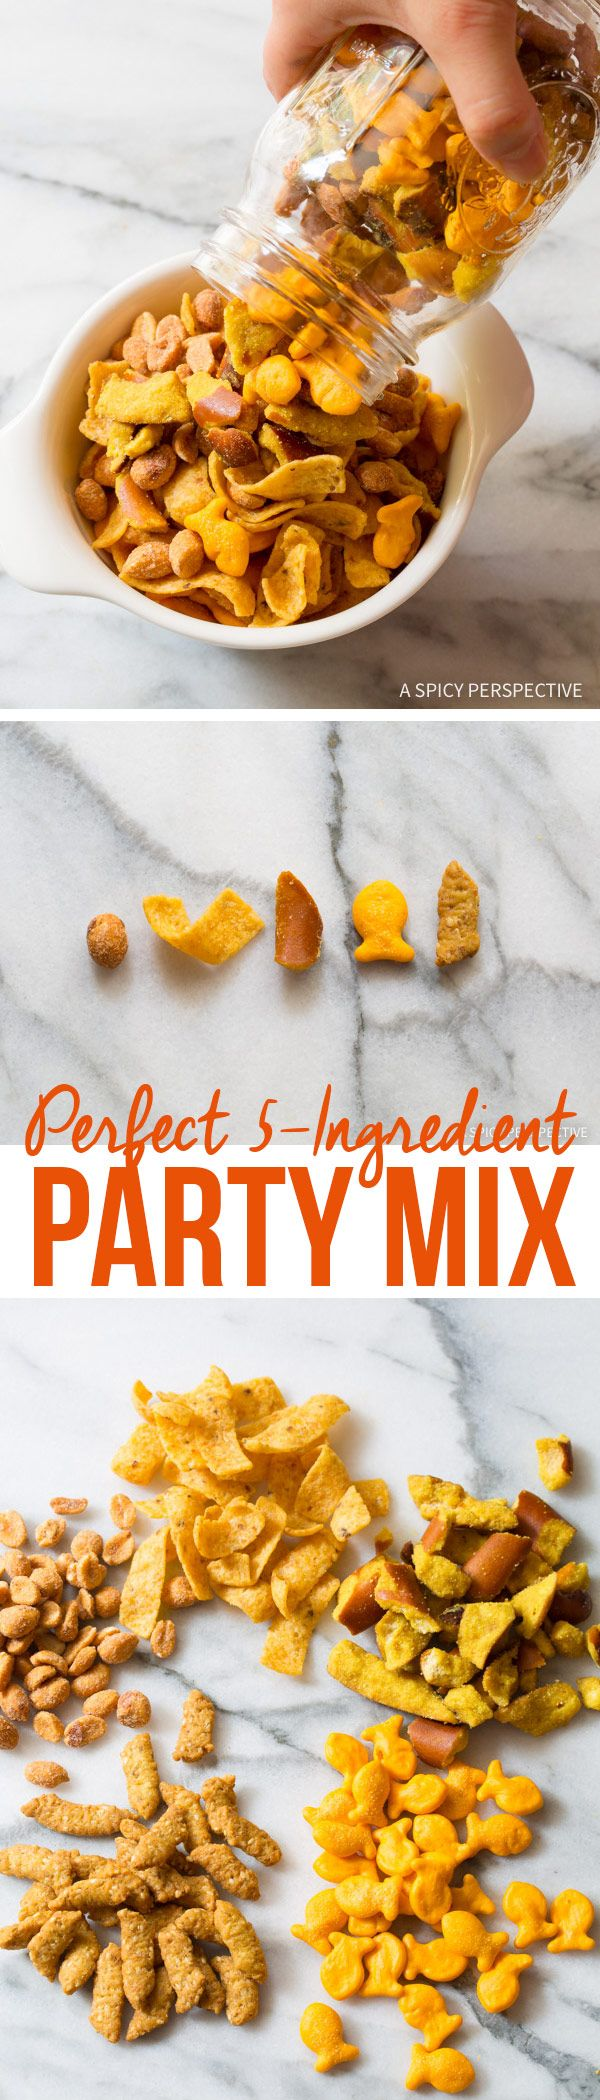 Easiest Party Snack Ever! Perfect 5-Ingredient Party Mix Recipe on ASpicyPerspective.com